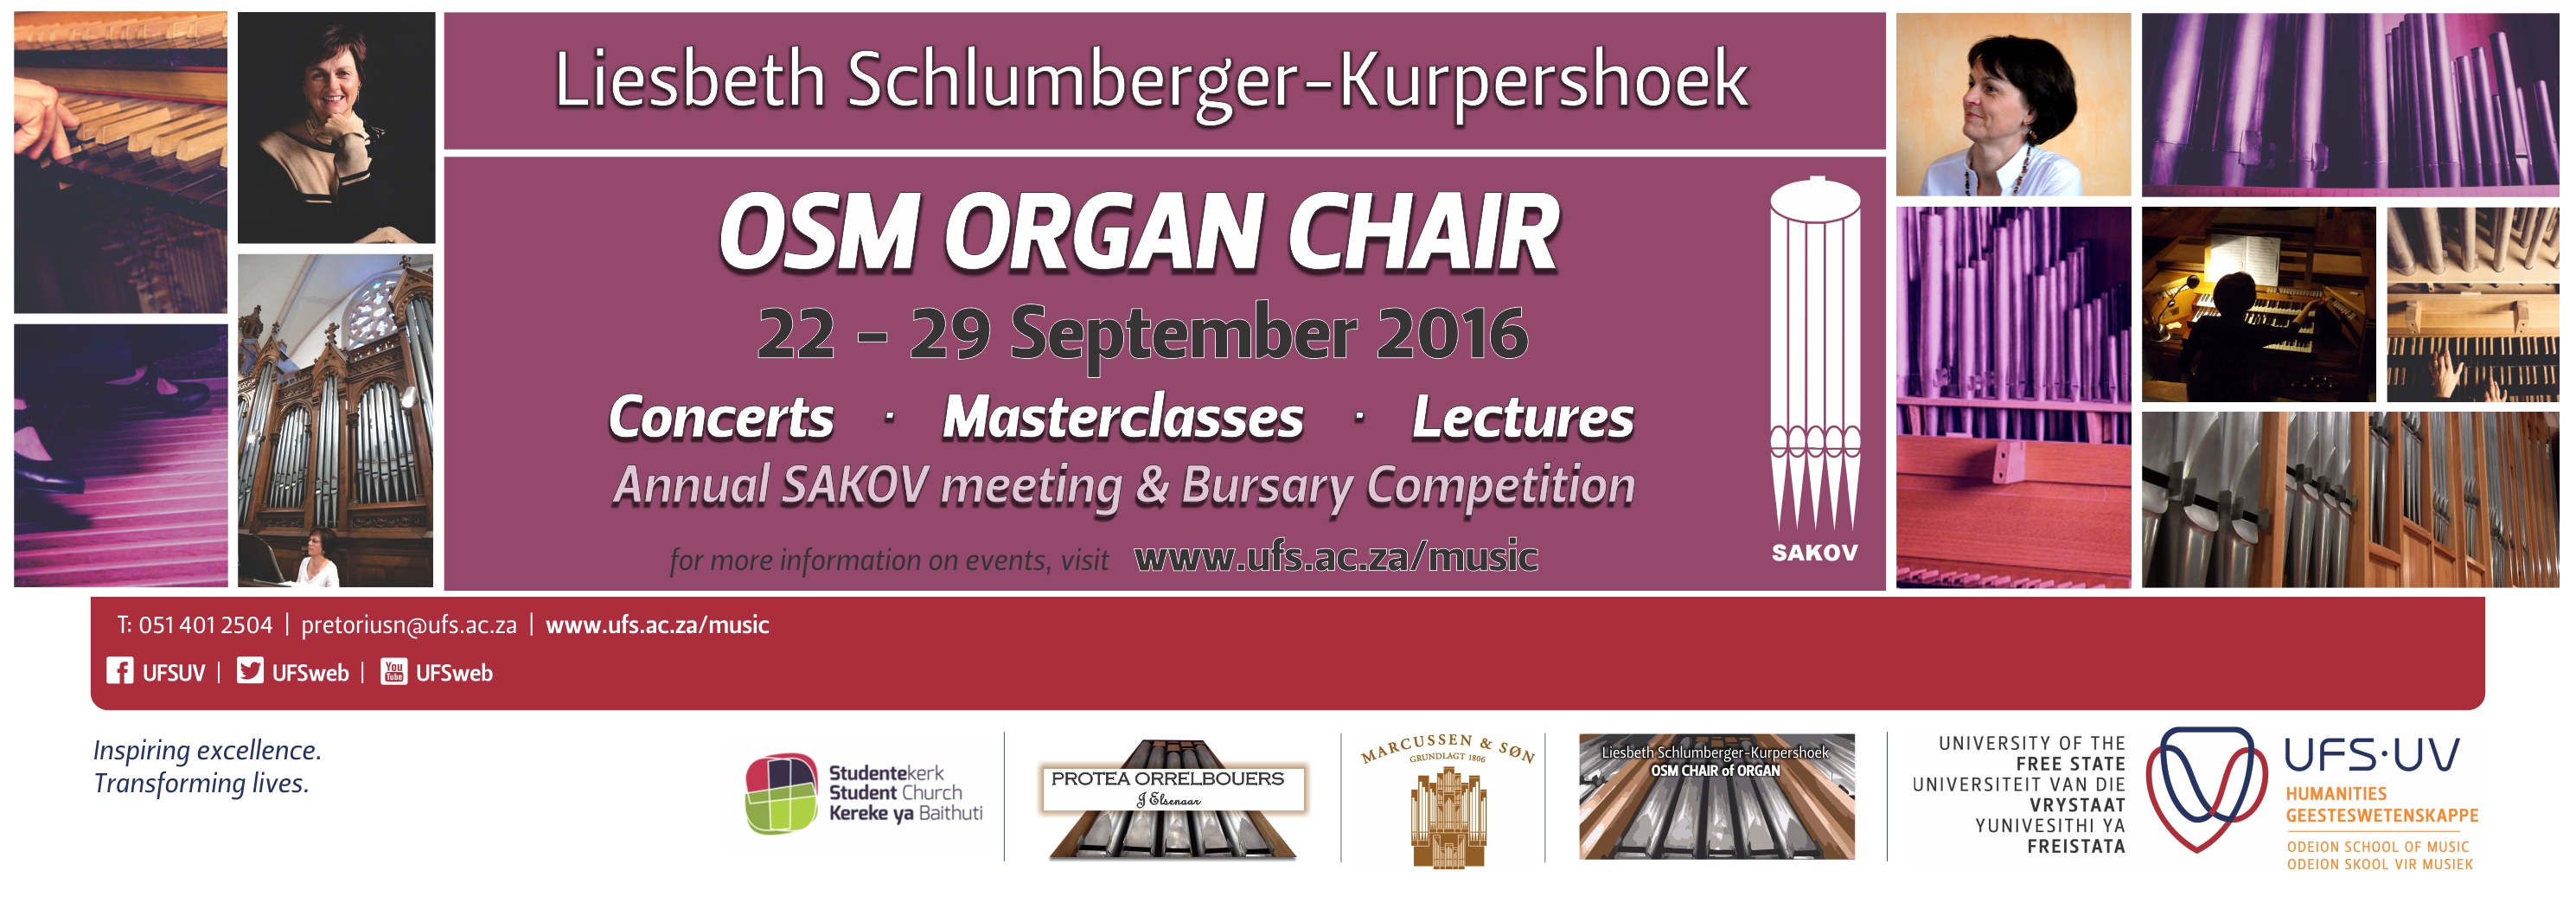 Liesbeth Schlumberger Organ Chair events 2016 finaal